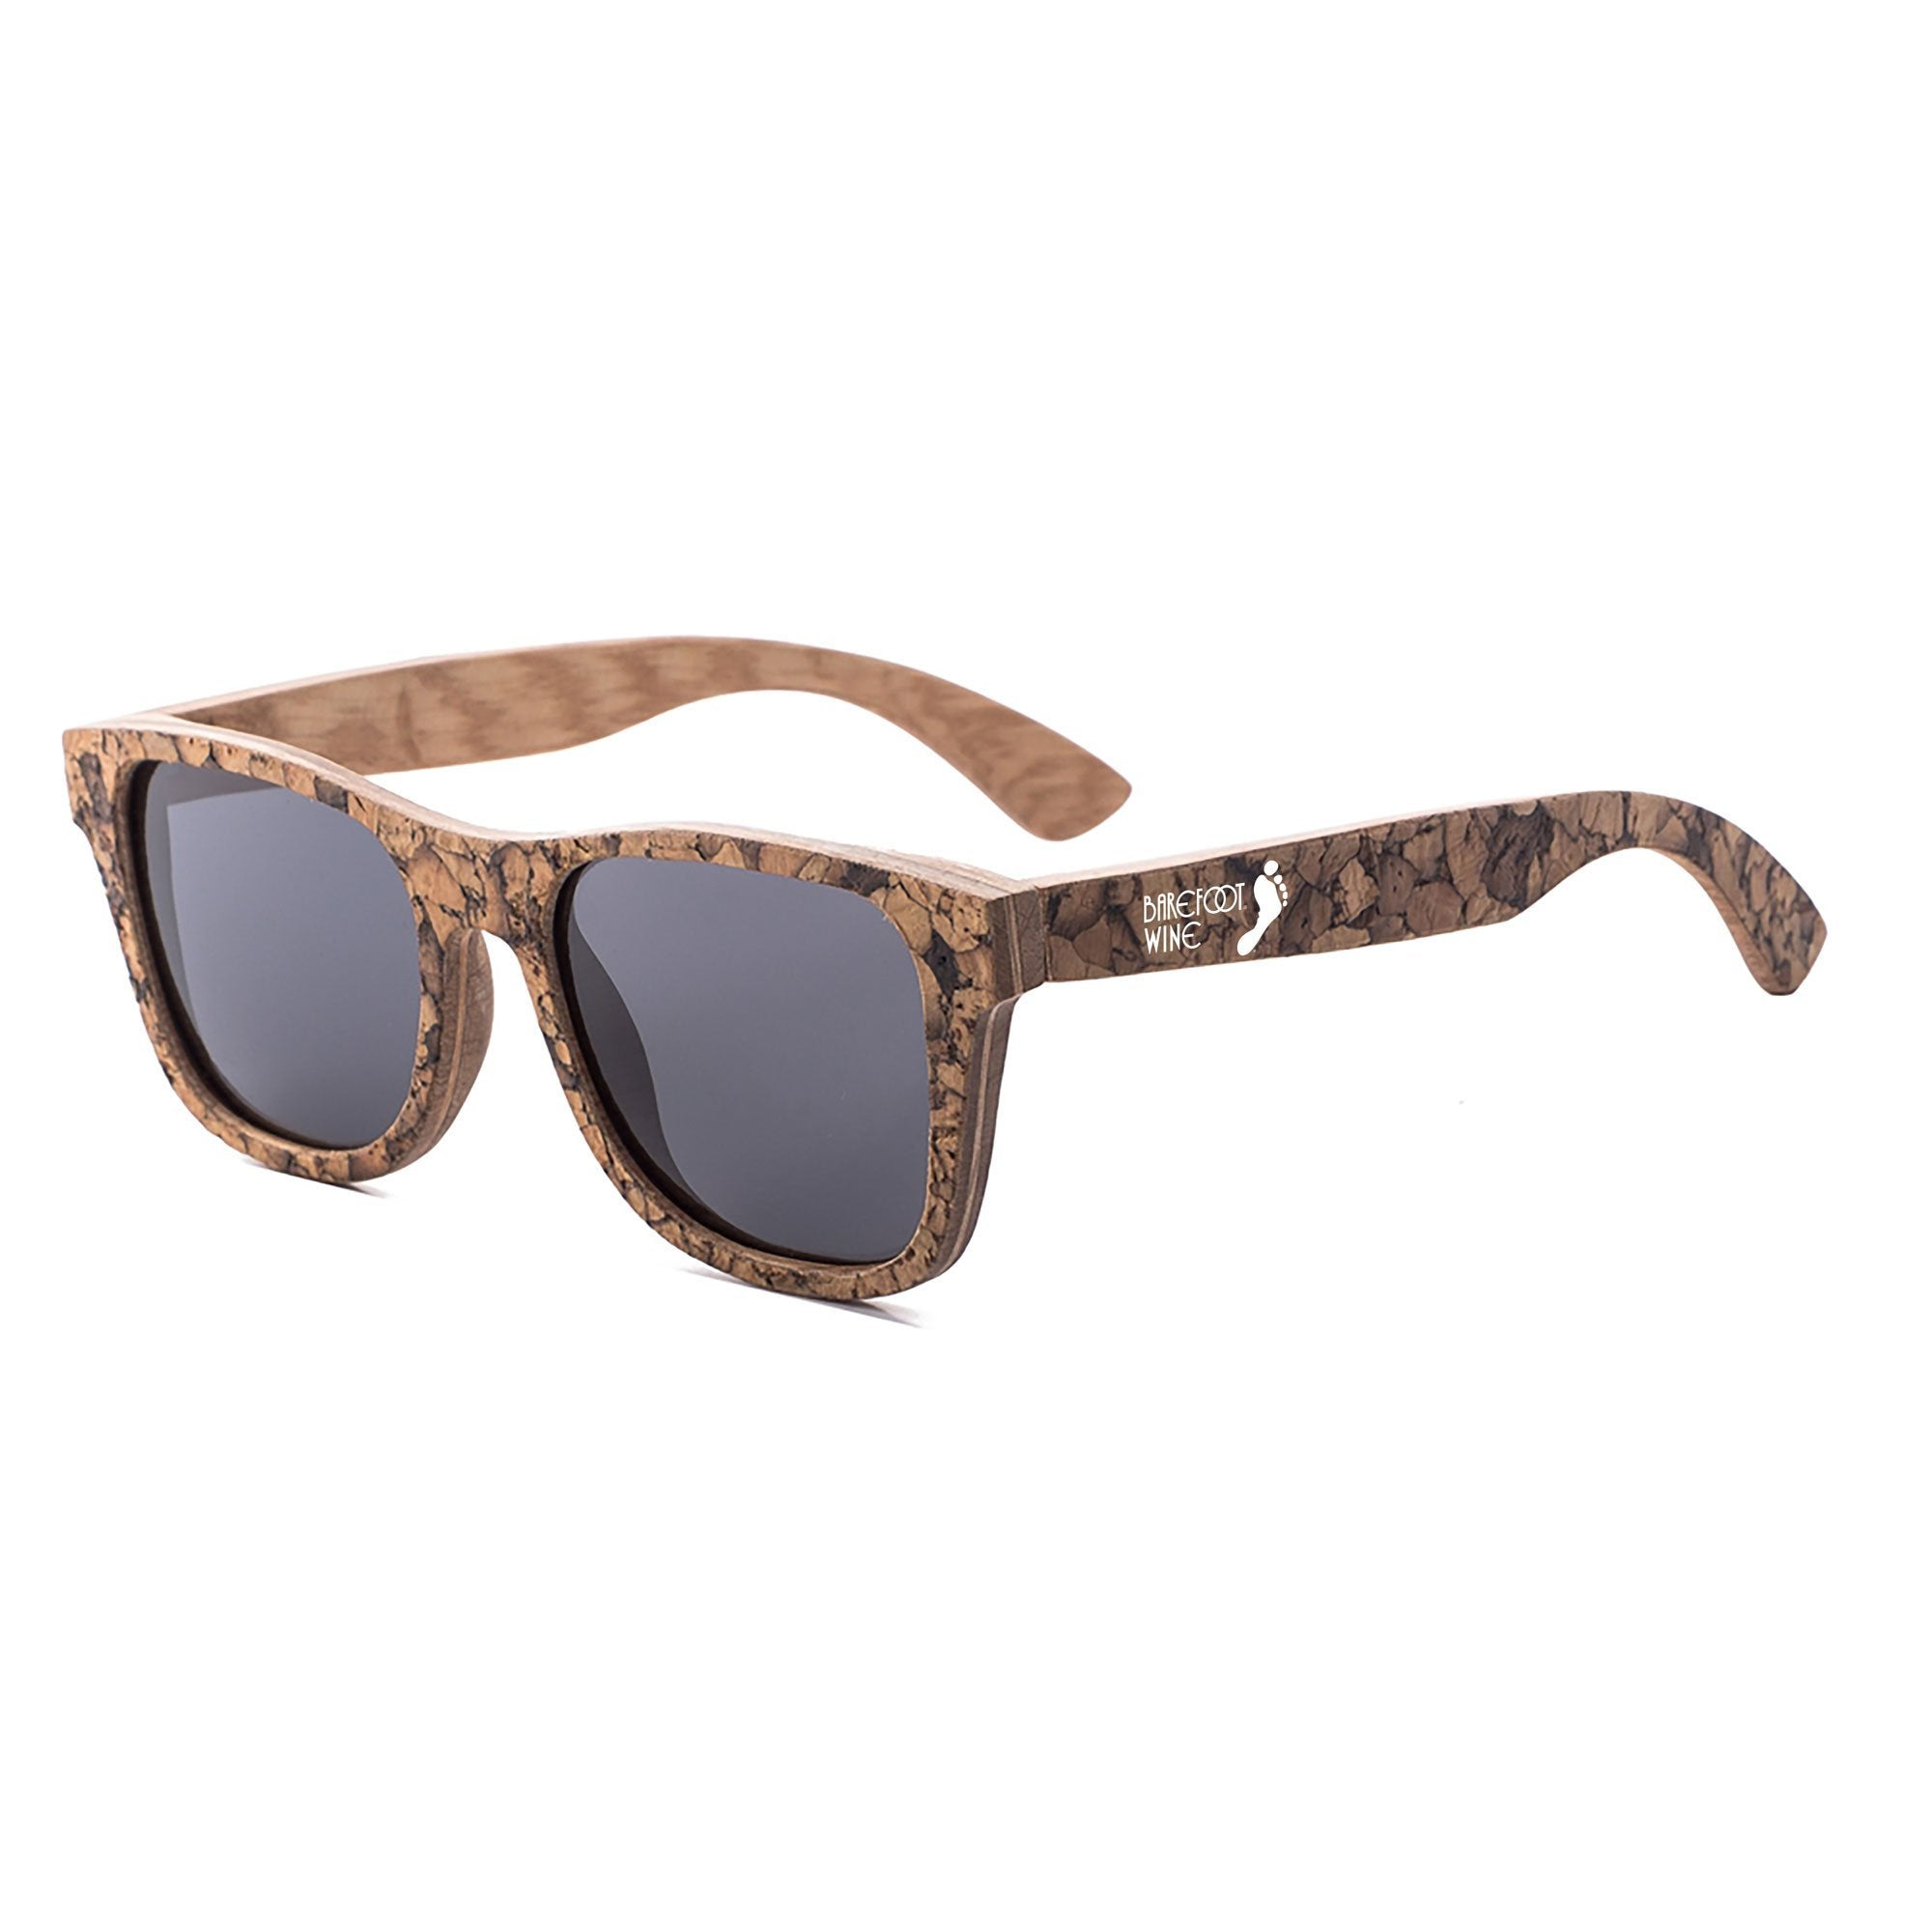 Cork Frame- Promotional Sunglasses w/1 color imprint